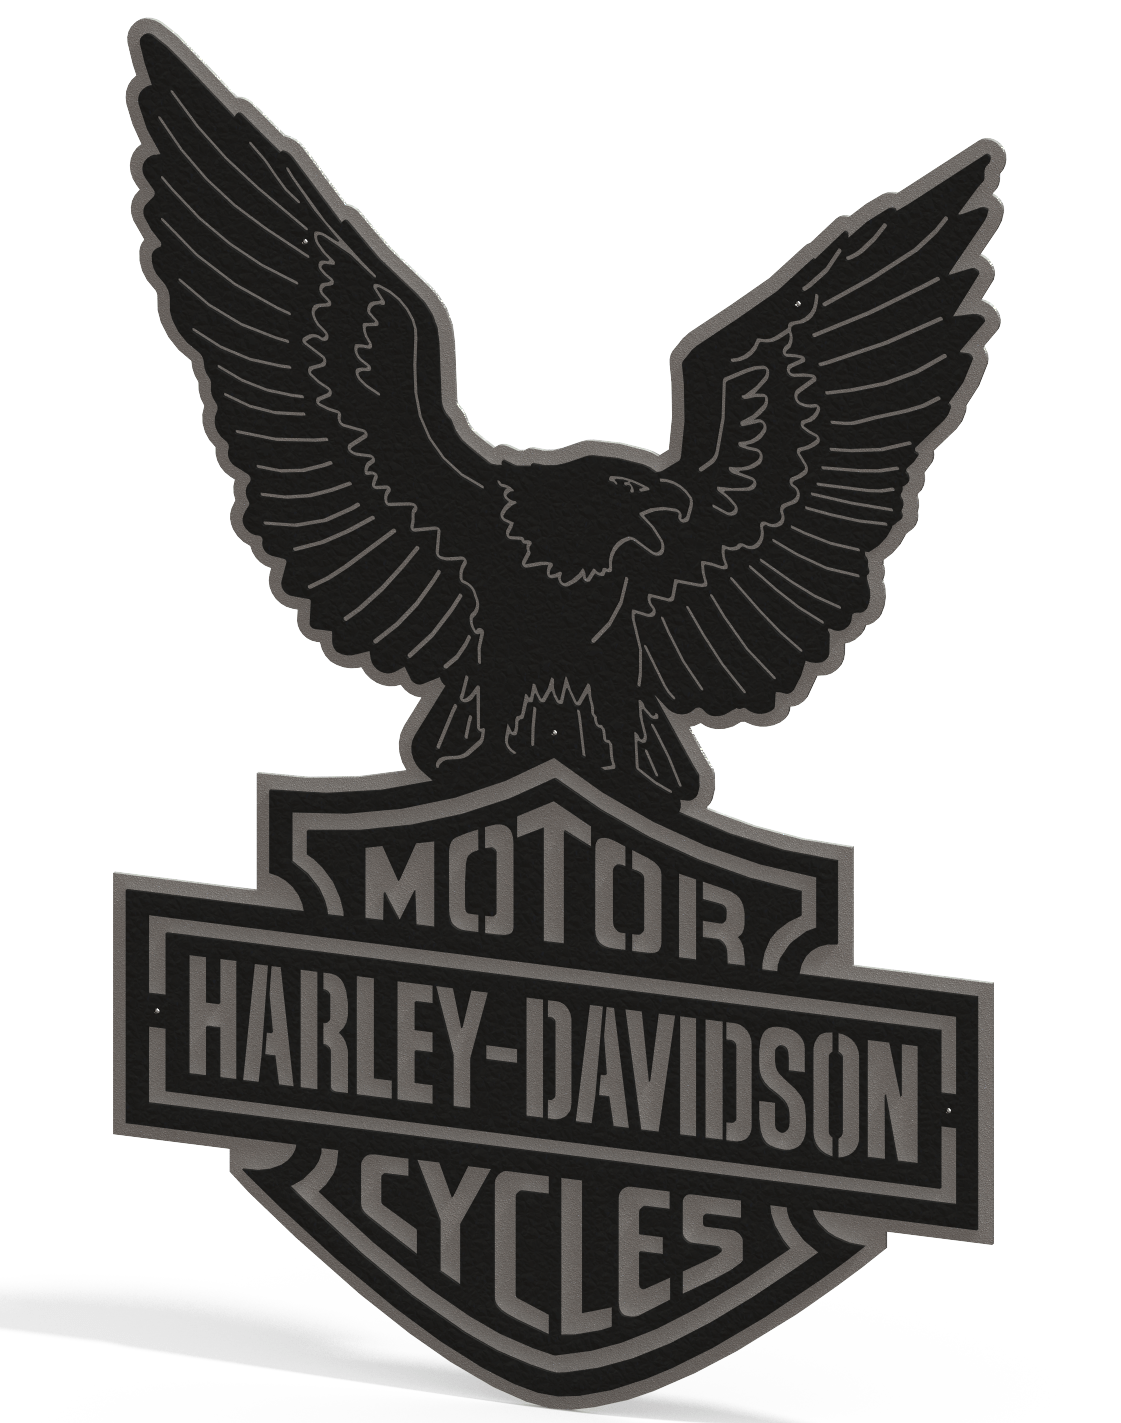 Harley Davidson Logo & Eagle - 2 Piece Steel Wall Decoration 1